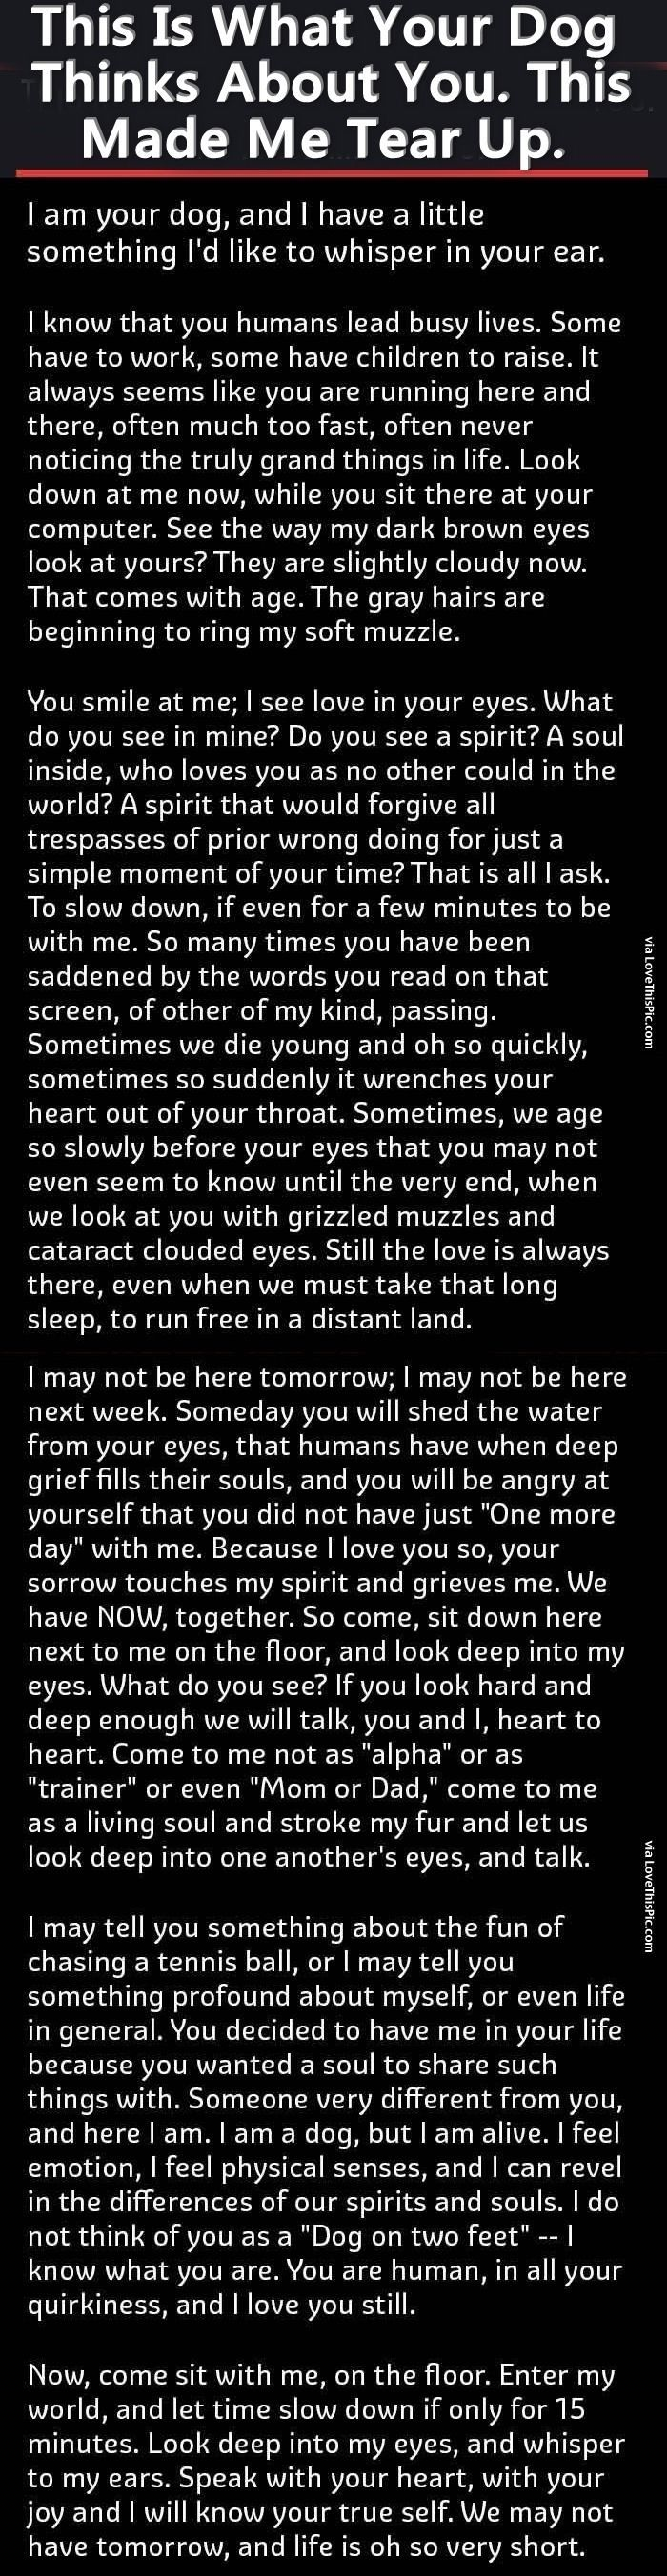 This Is What Your Dog Thinks About You. This Made Me Tear Up. dogs dog story pets interesting facts stories heart warming